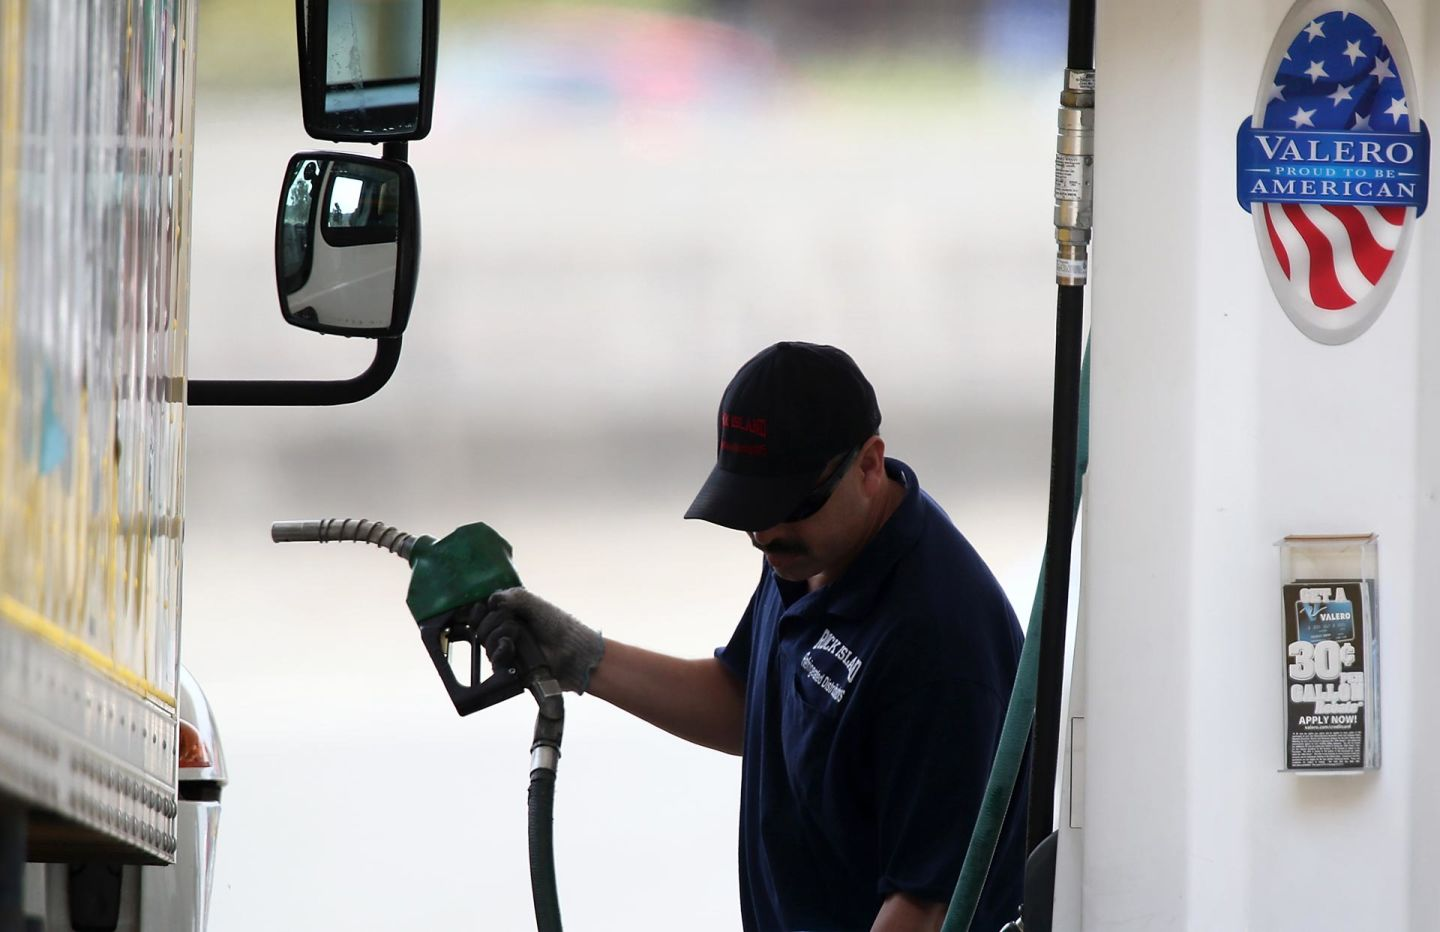 A customer prepares to pump gas into his truck at a Valero gas station in Mill Valley.